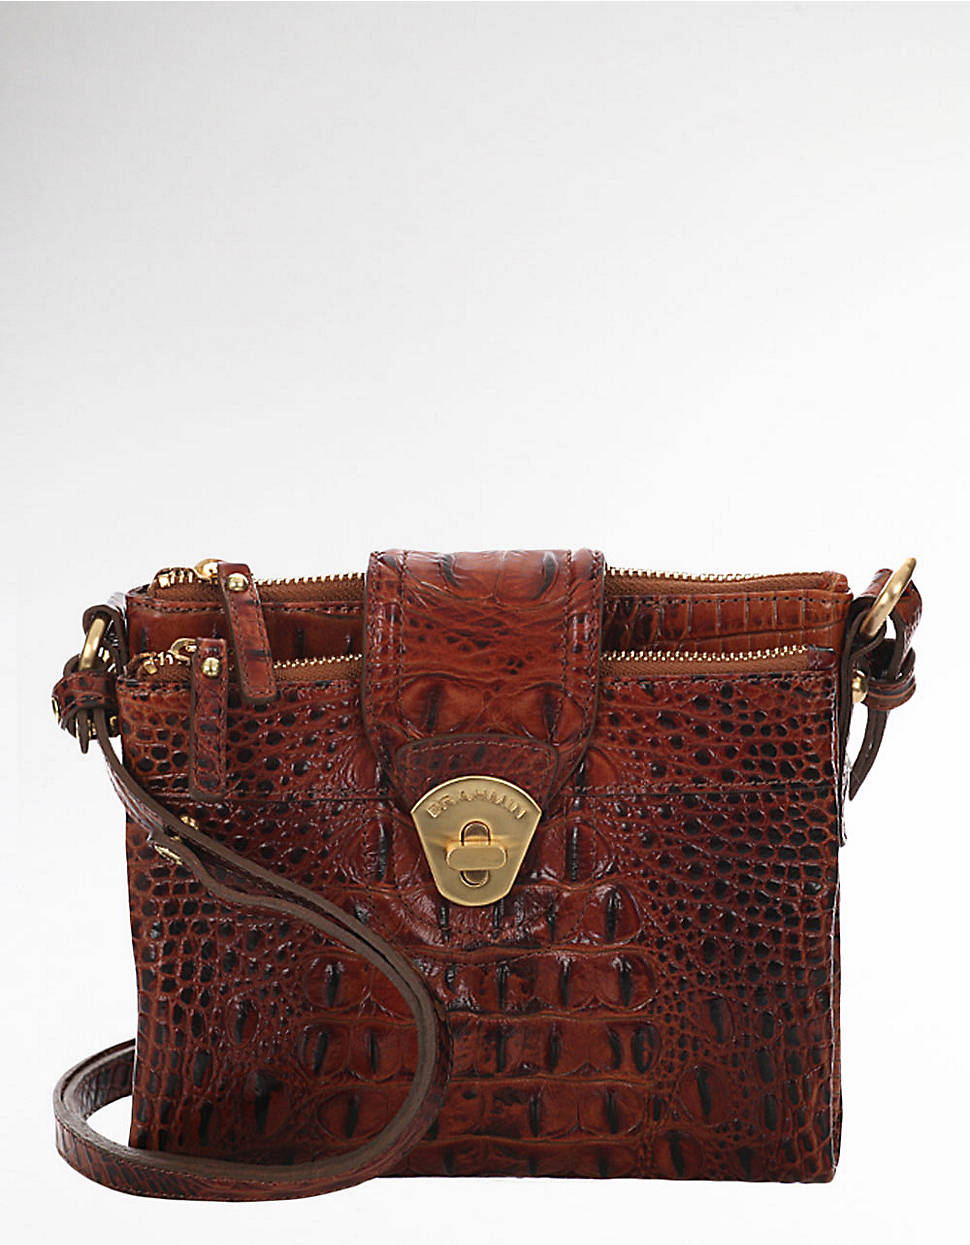 d70f9e86a Brahmin Crossbody Shoulder Bag - Coach Crossbody Bag